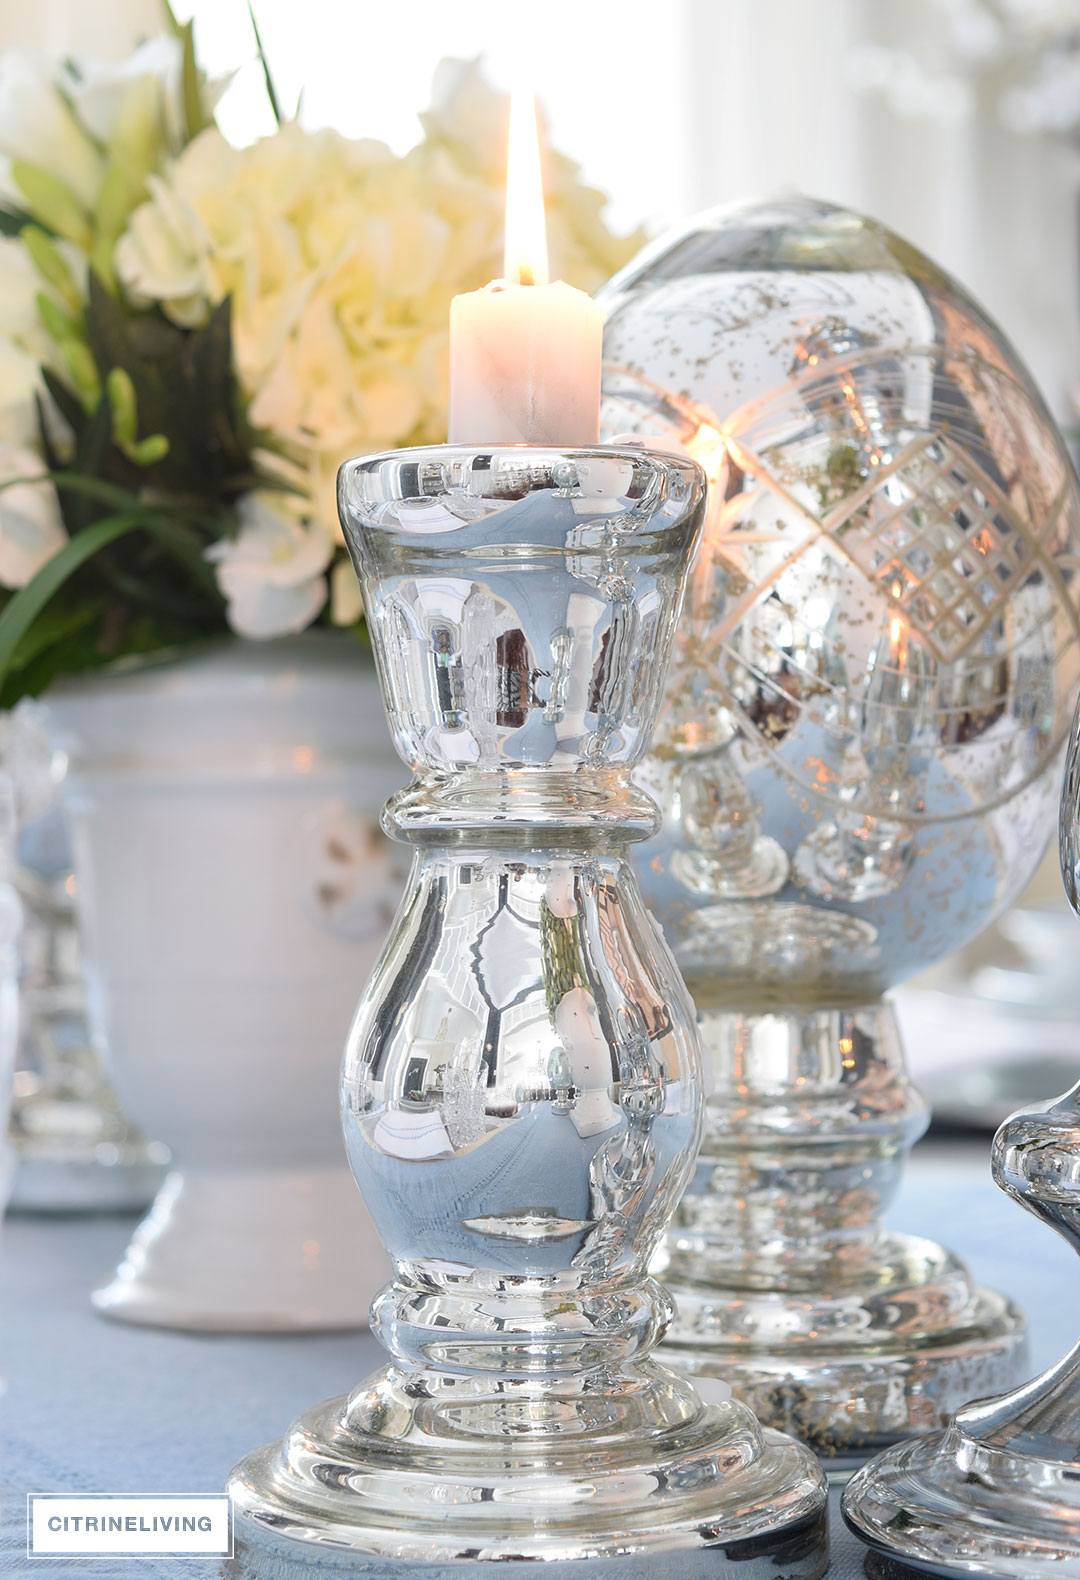 Sparkling mercury glass candleholder and etched Easter egg accessories add elegance and shine to this sophisticated Easter table.